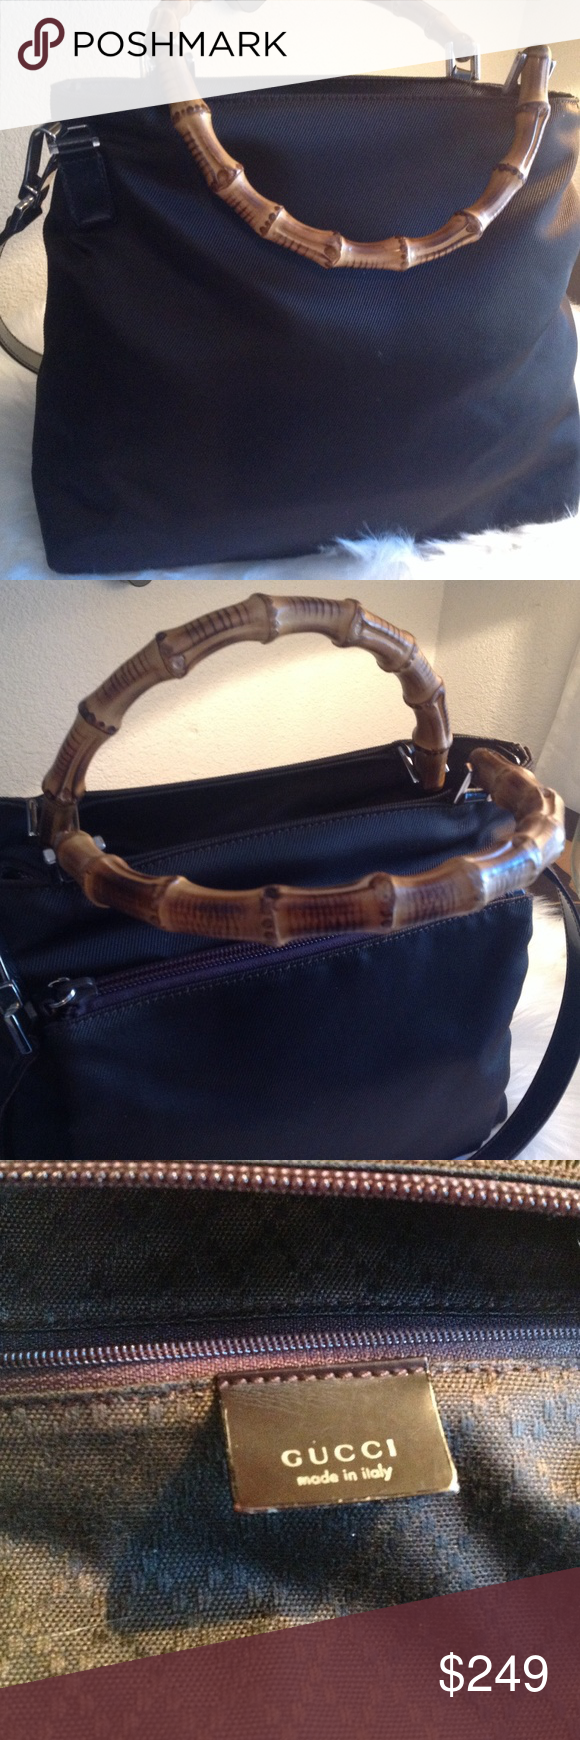 Gucci Bamboo Tote Very Clean Brown  Nylon Exterior Bamboo  Carrying Handles  Lea…